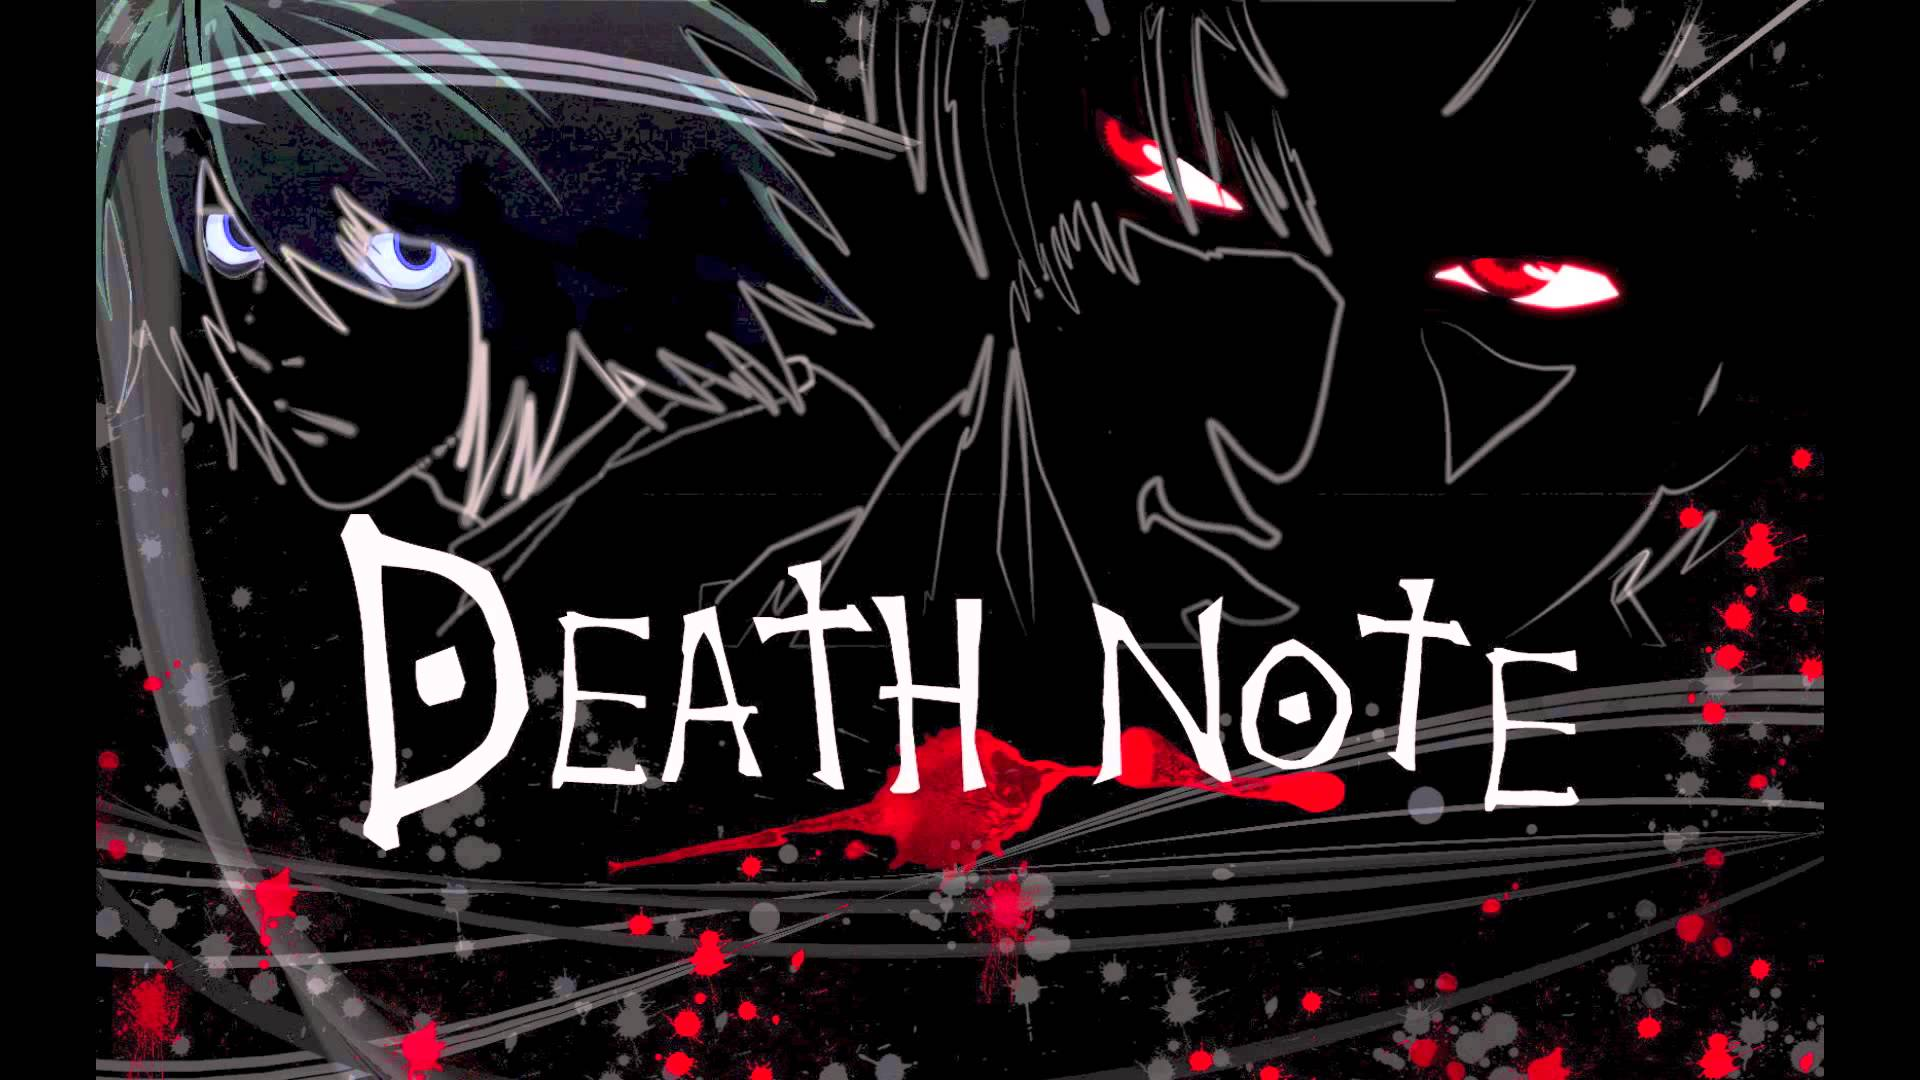 Hd Quotes Wallpapers About Life Death Note My First Experience With Anime Sai